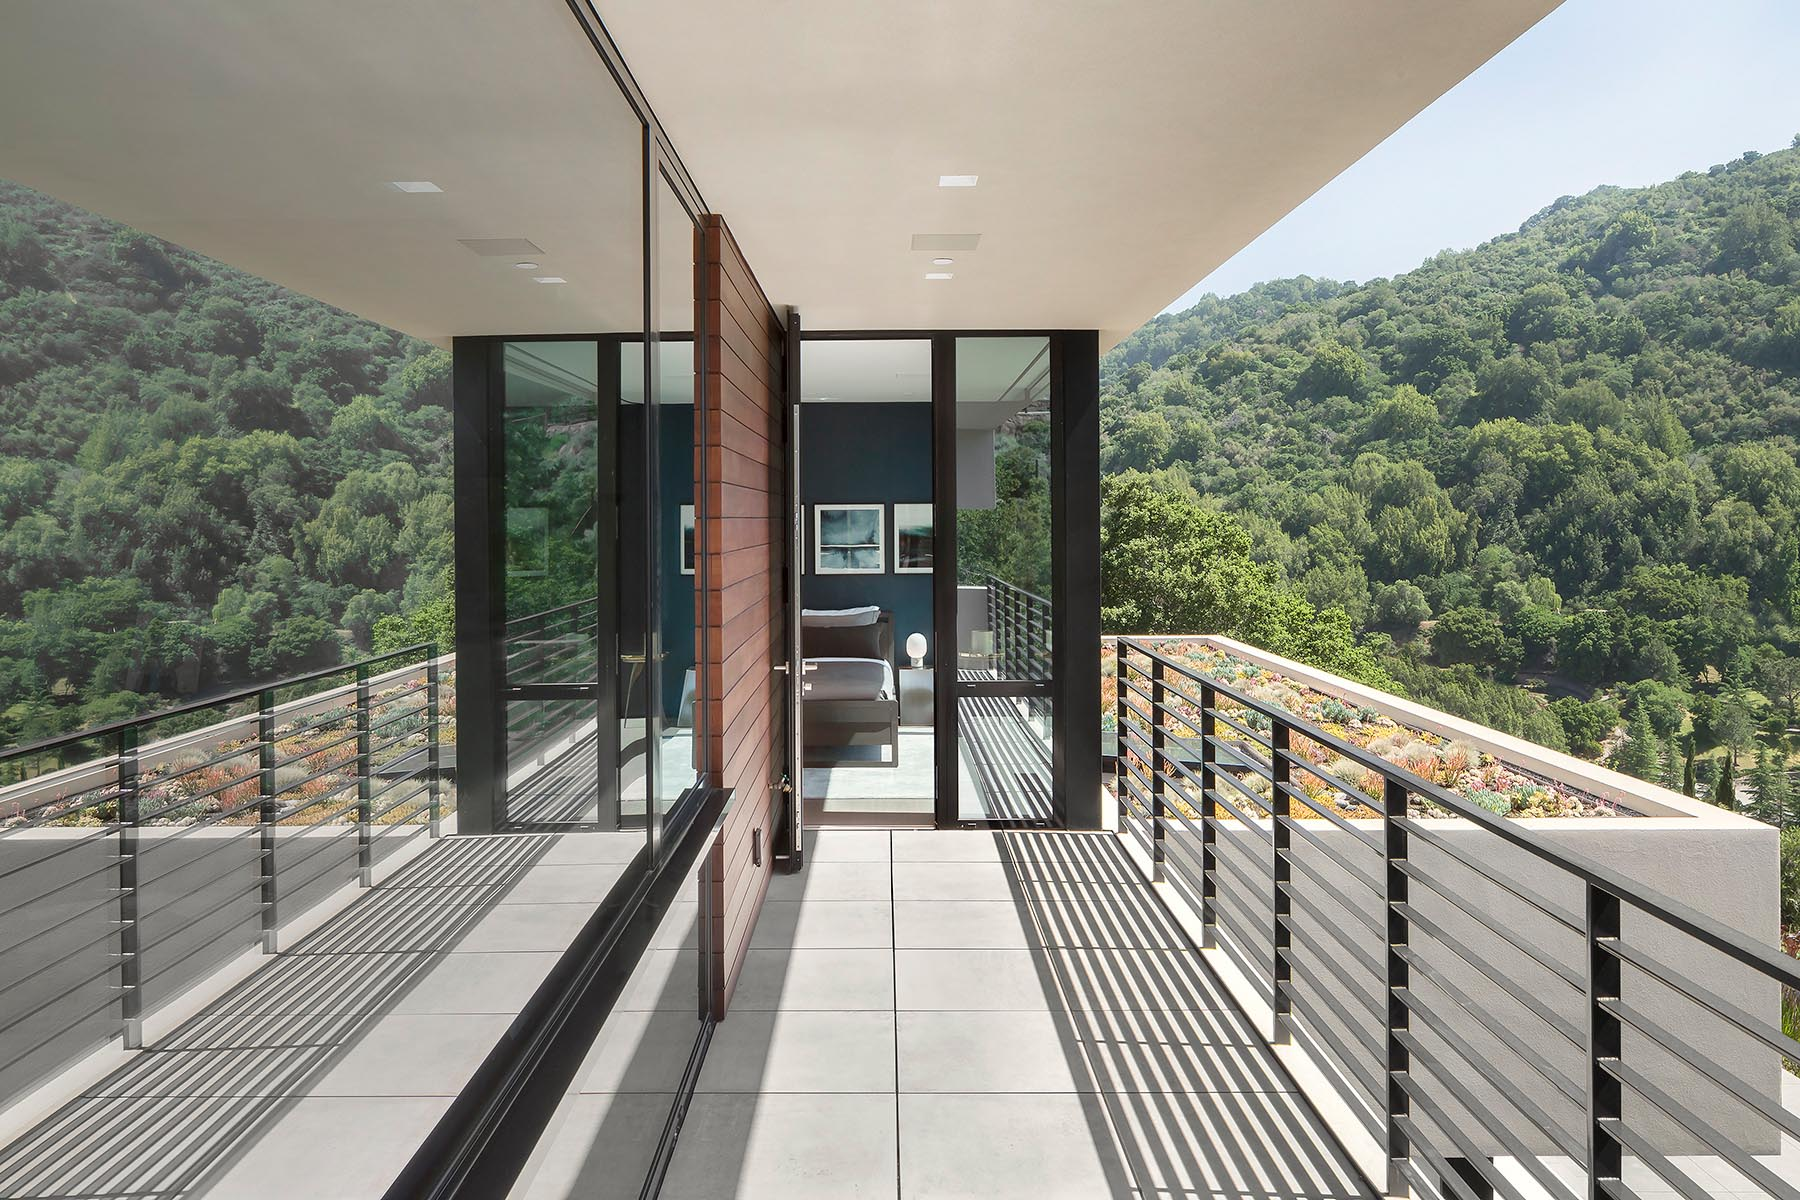 A bedroom opens up to a balcony with views of the surrounding hills and a green roof.